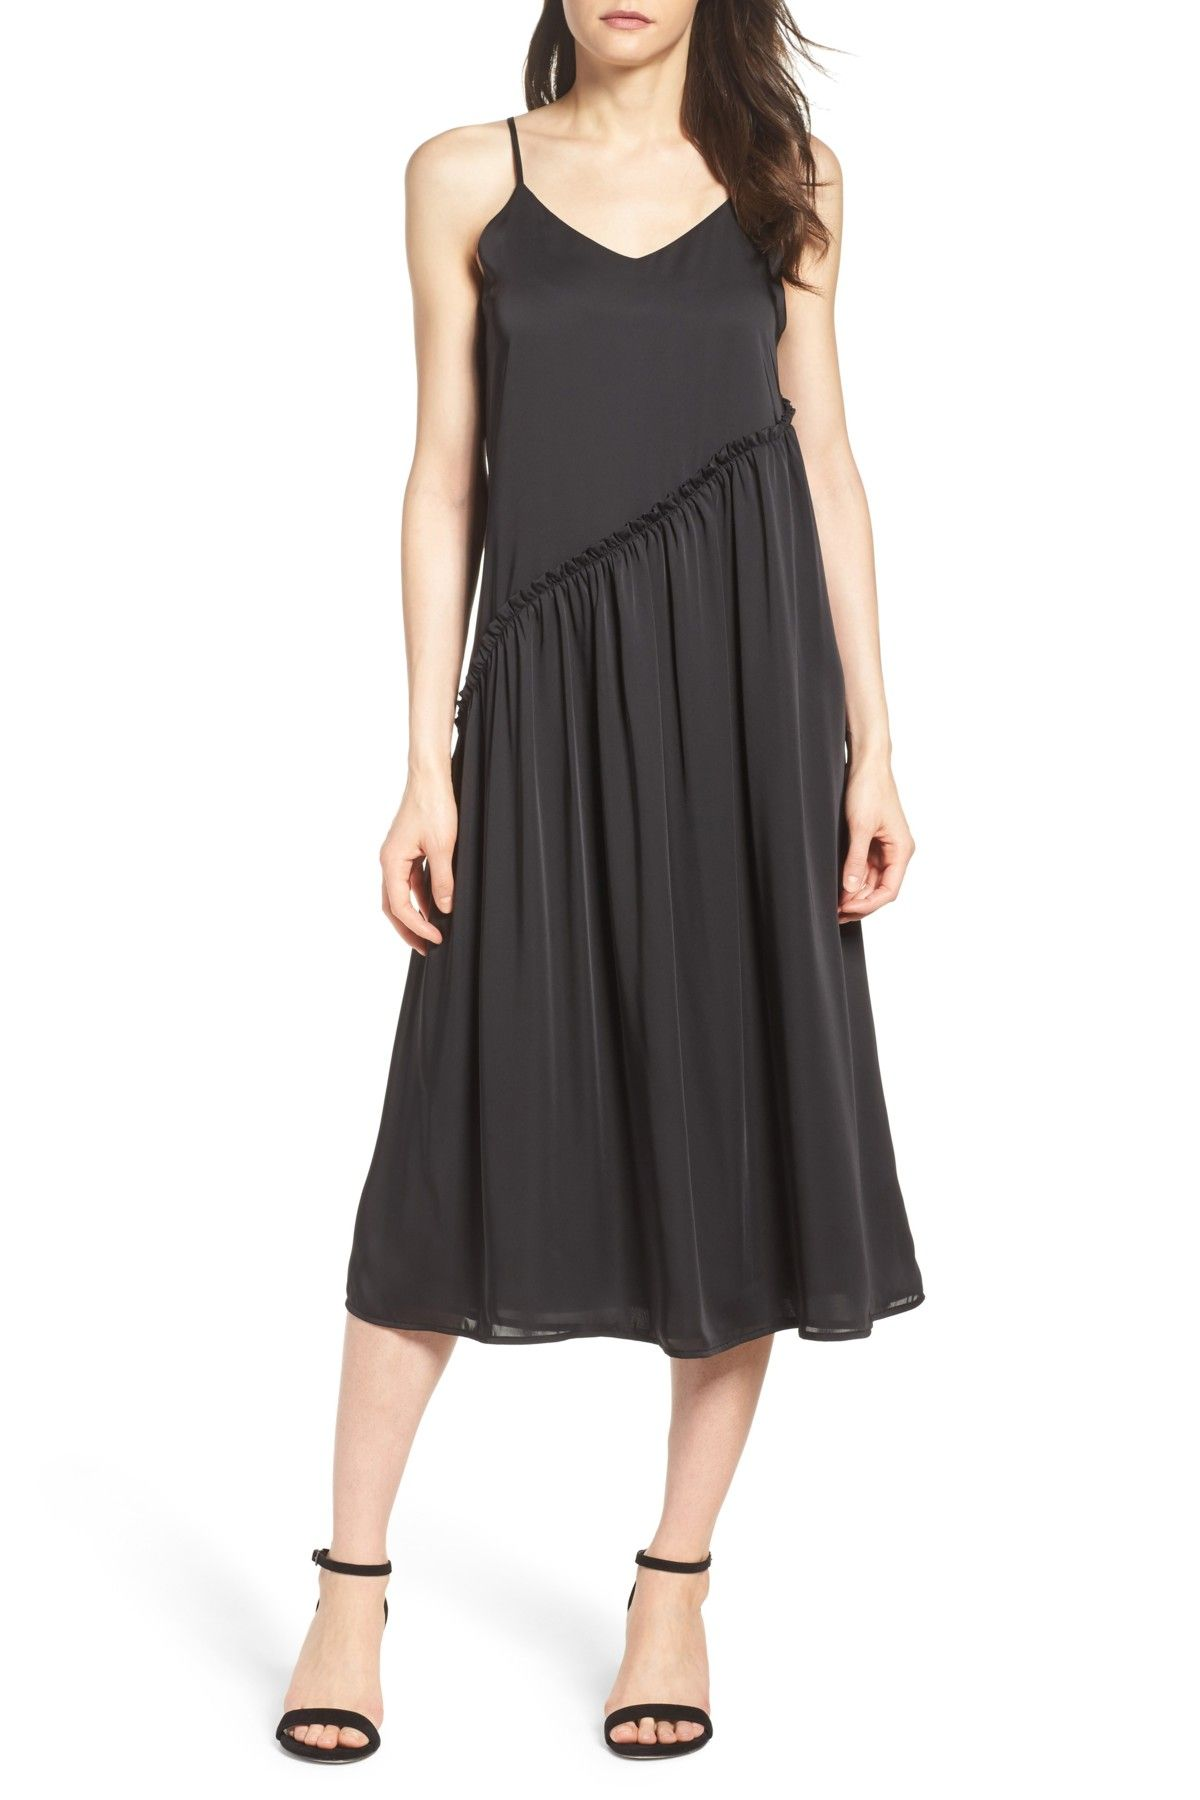 Nordstrom dresses wedding guest  Ruffle Midi Slipdress  Ruffles and Products